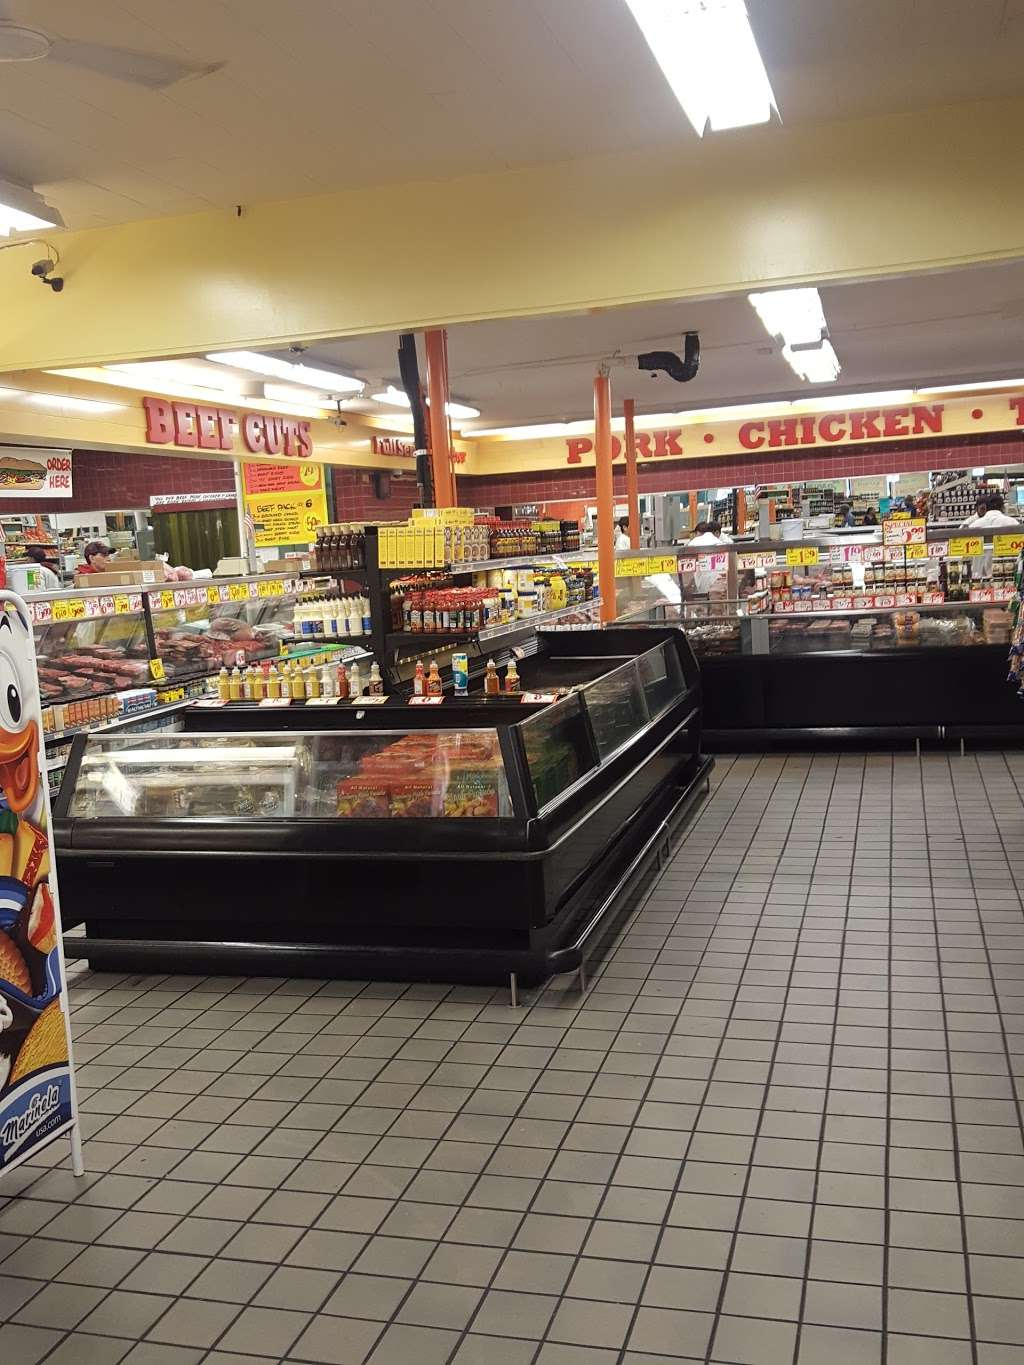 Dixmoor Market - store    Photo 7 of 10   Address: 14635 S Western Ave, Dixmoor, IL 60426, USA   Phone: (708) 489-1111